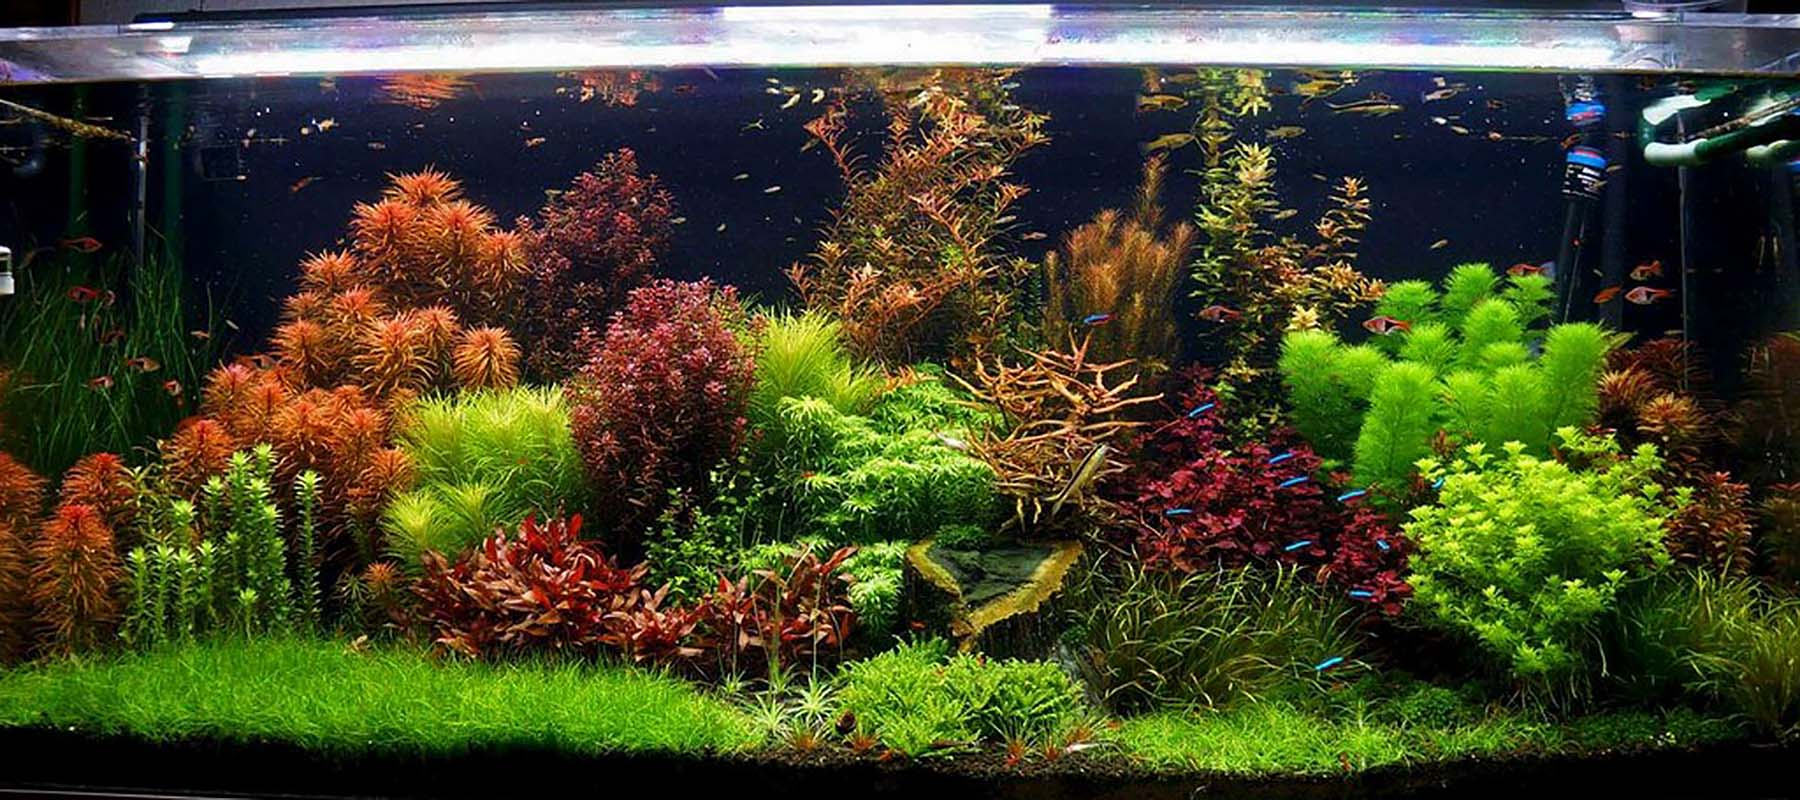 Aquascape Styles And Ideas The 2hr Aquarist